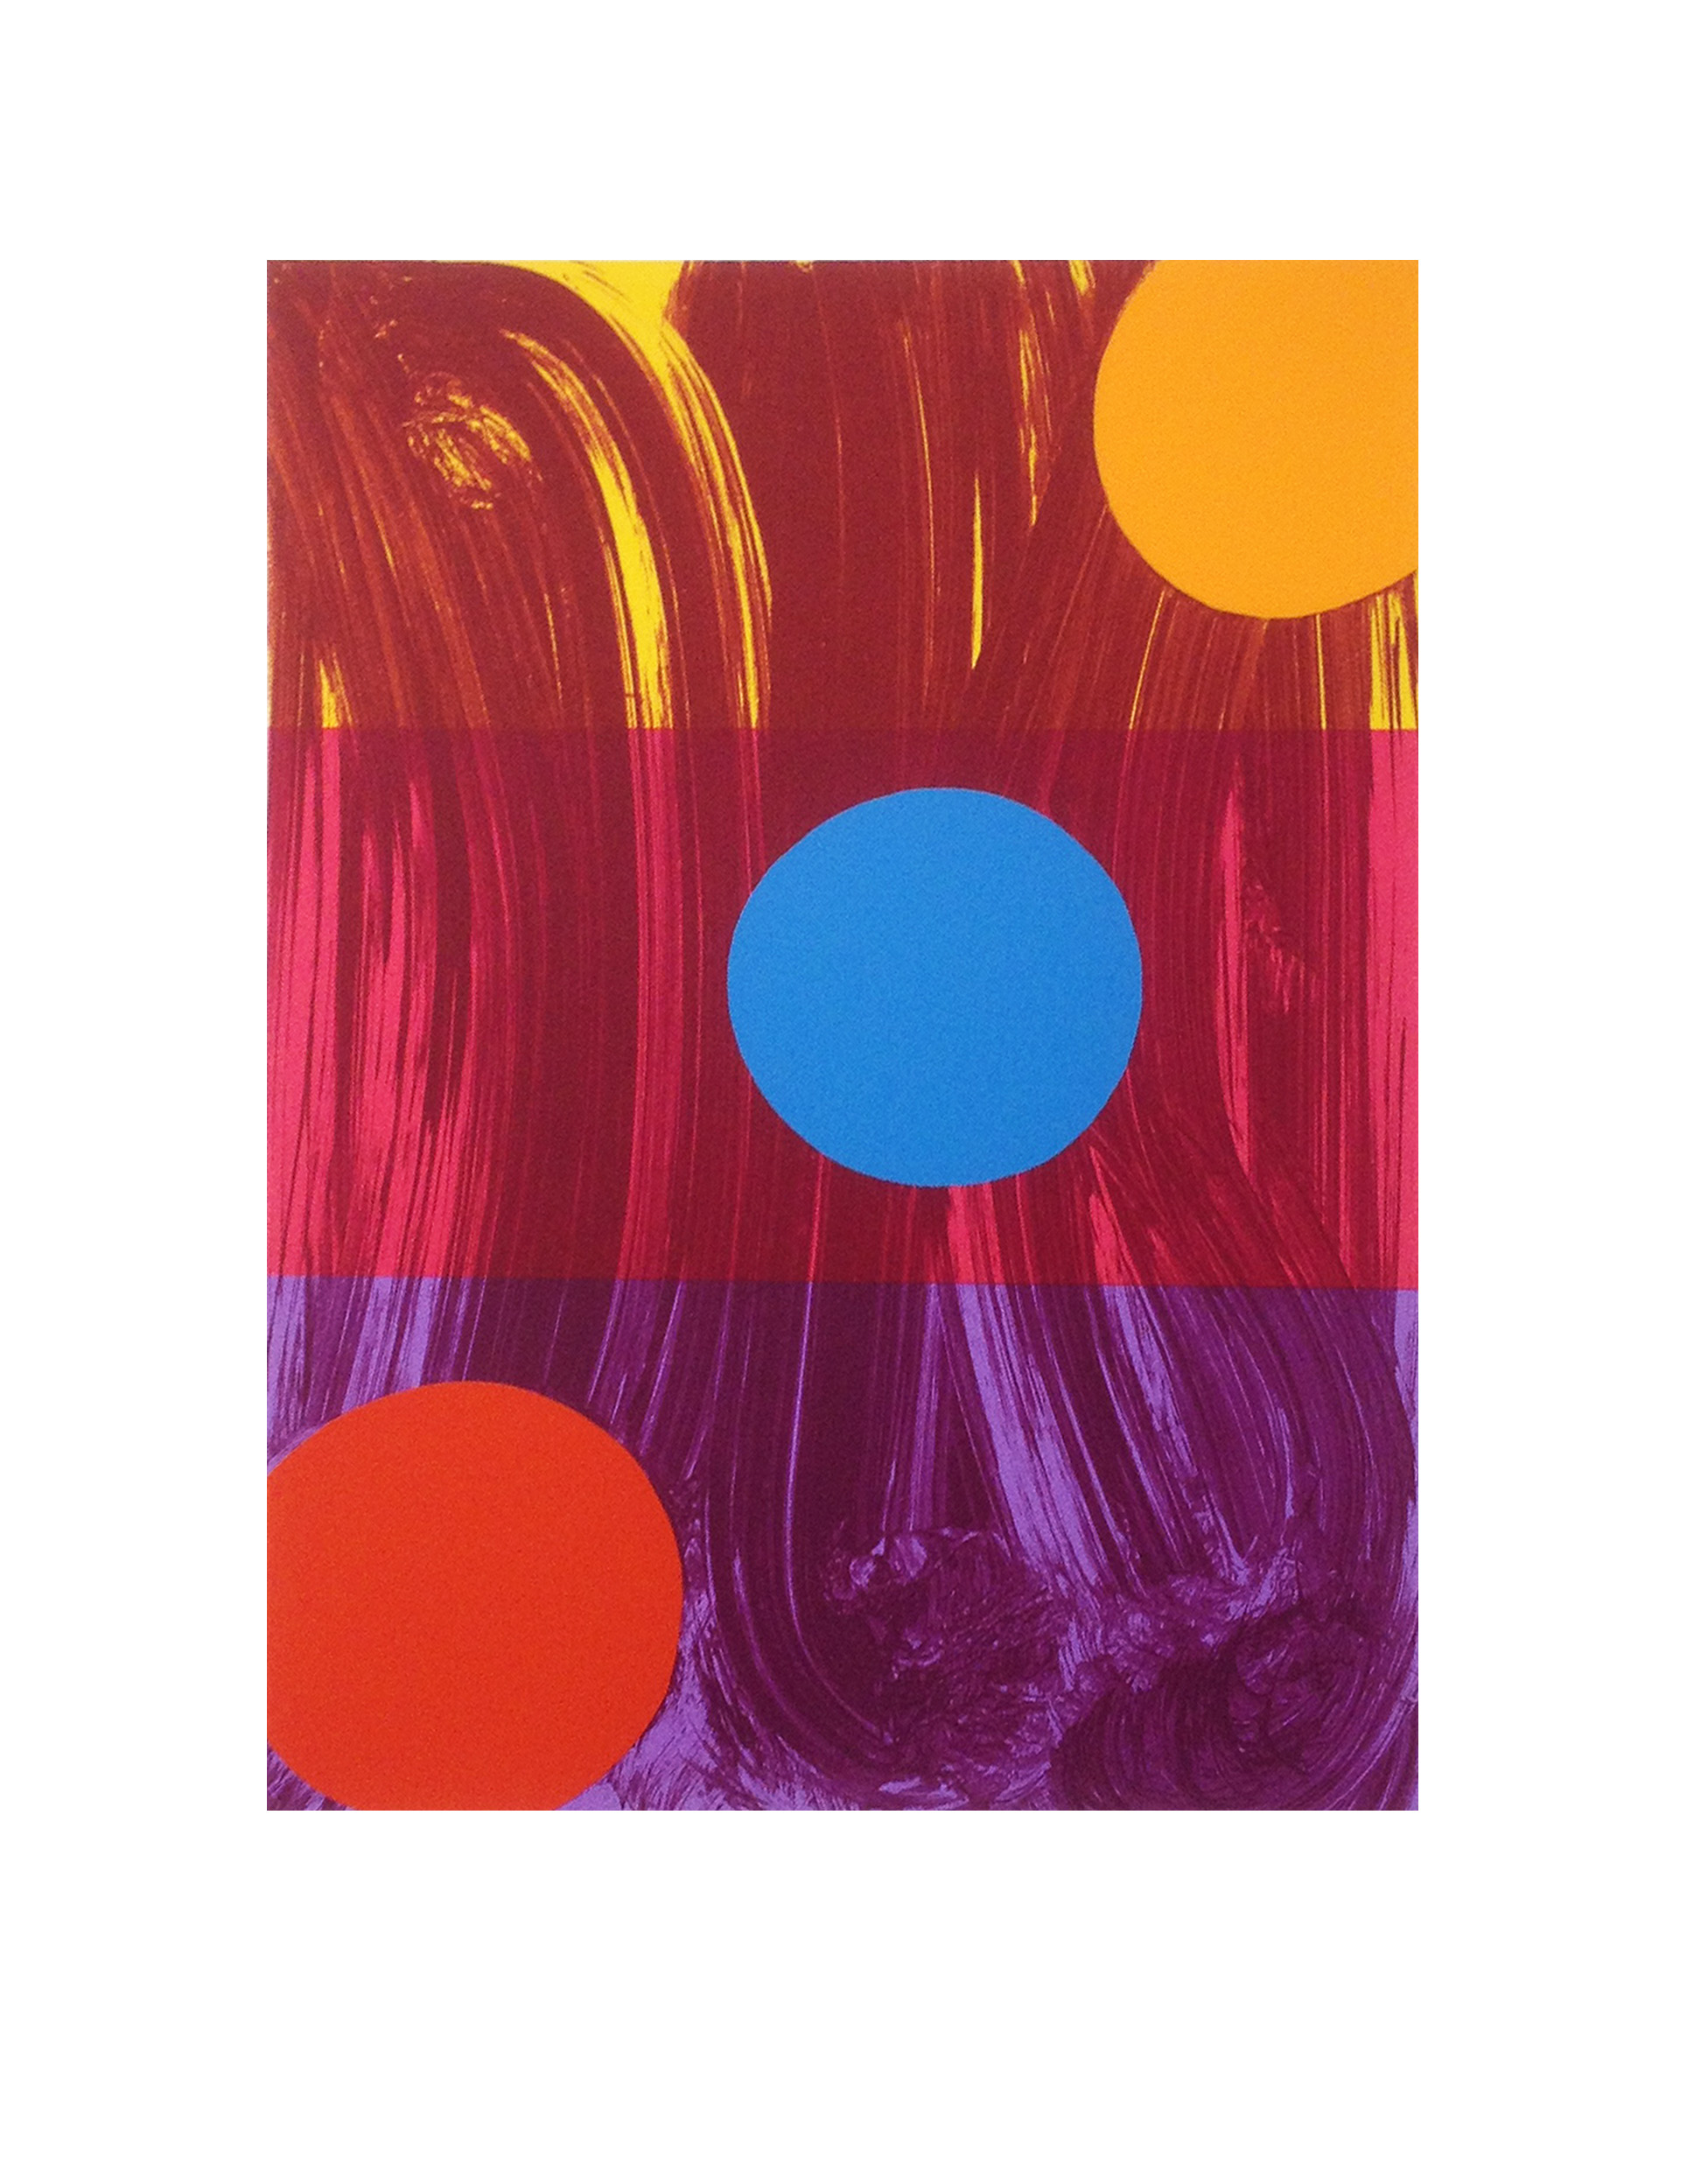 Mali Morris   RA, Centre Stage    Date:  2017   Size (cm - unframed):  61.5 x 49.5  Technique:  Screenprint   Materials:  Somerset Velvet 300gsm   Edition size:  50  Publisher:  The Print Studio   Copyright:  The Artist    P.O.A.